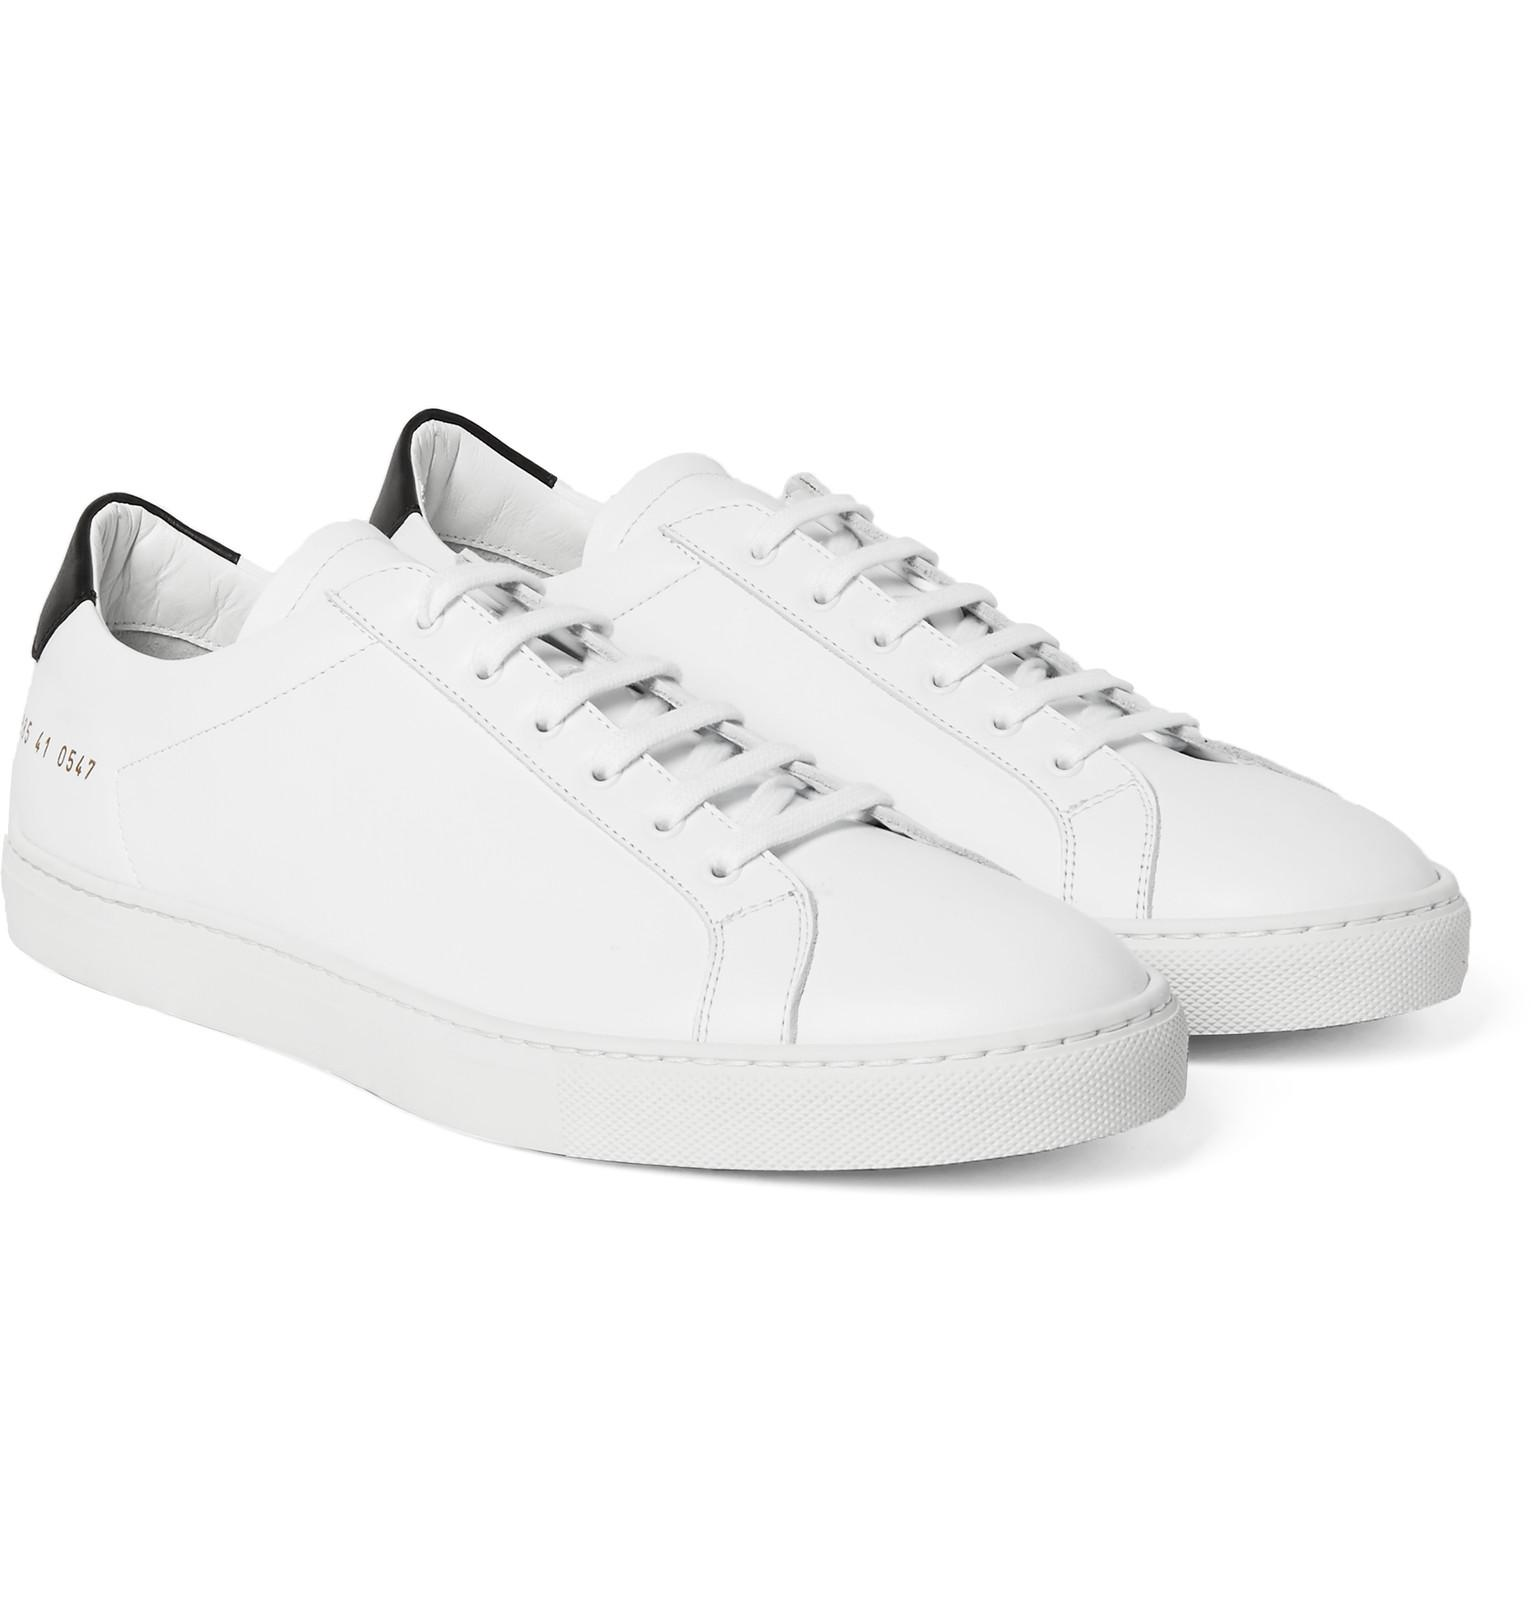 common projects achilles retro leather sneakers in white for men lyst. Black Bedroom Furniture Sets. Home Design Ideas